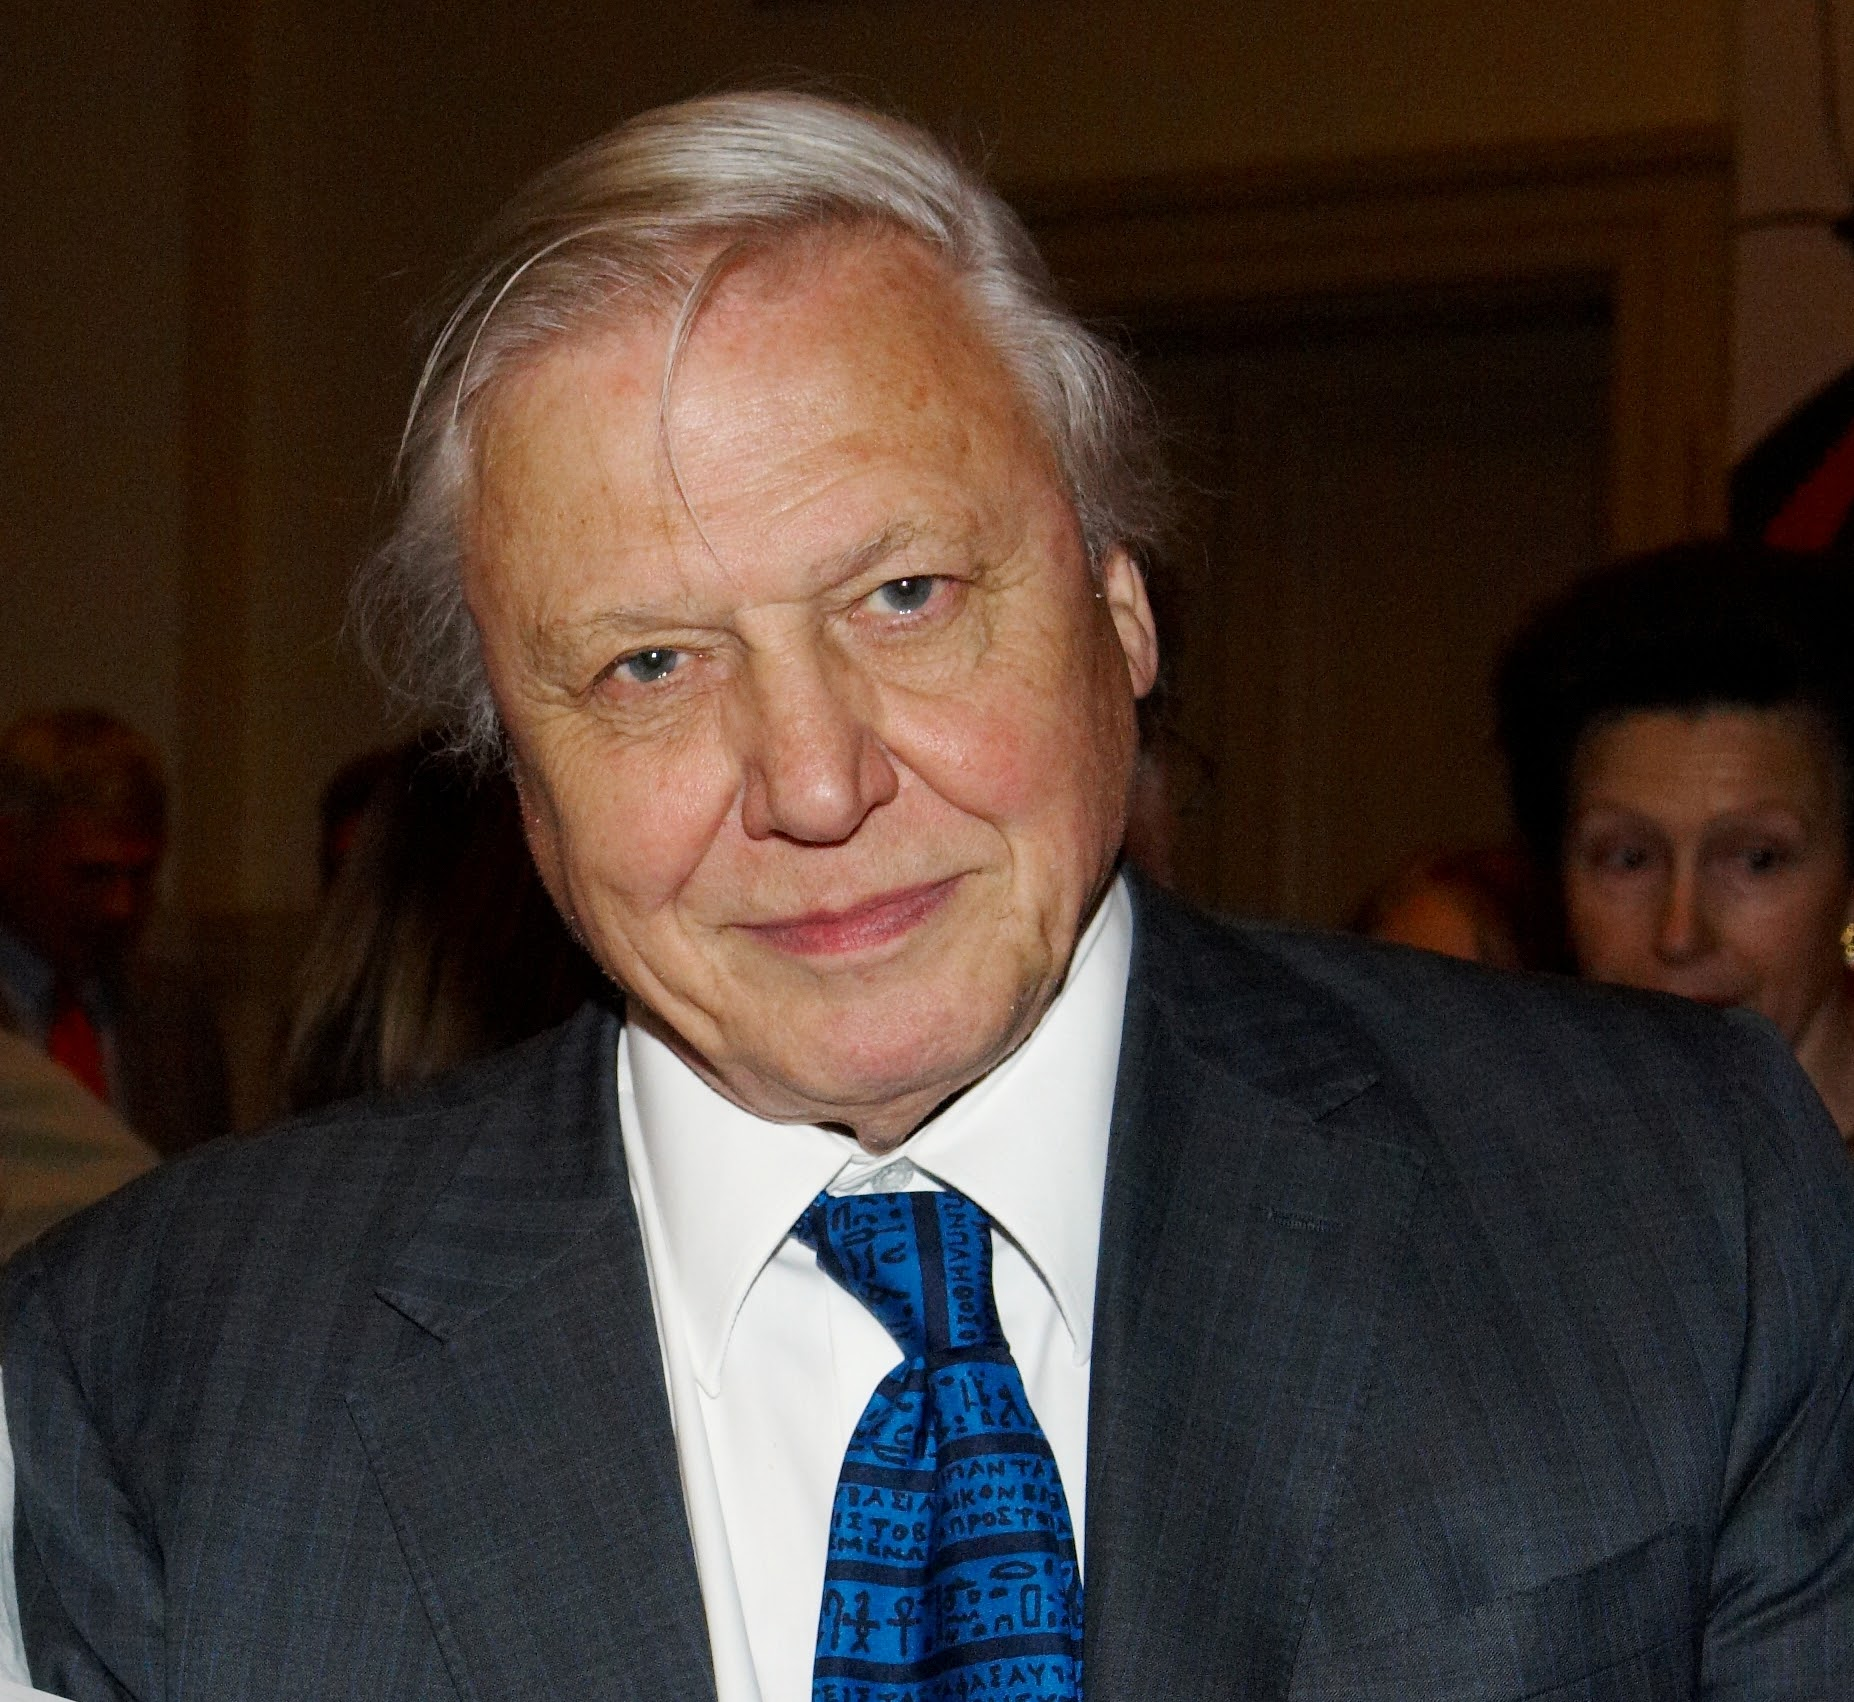 Profile image for Sir David Attenborough, OM, CH, CVO, CBE